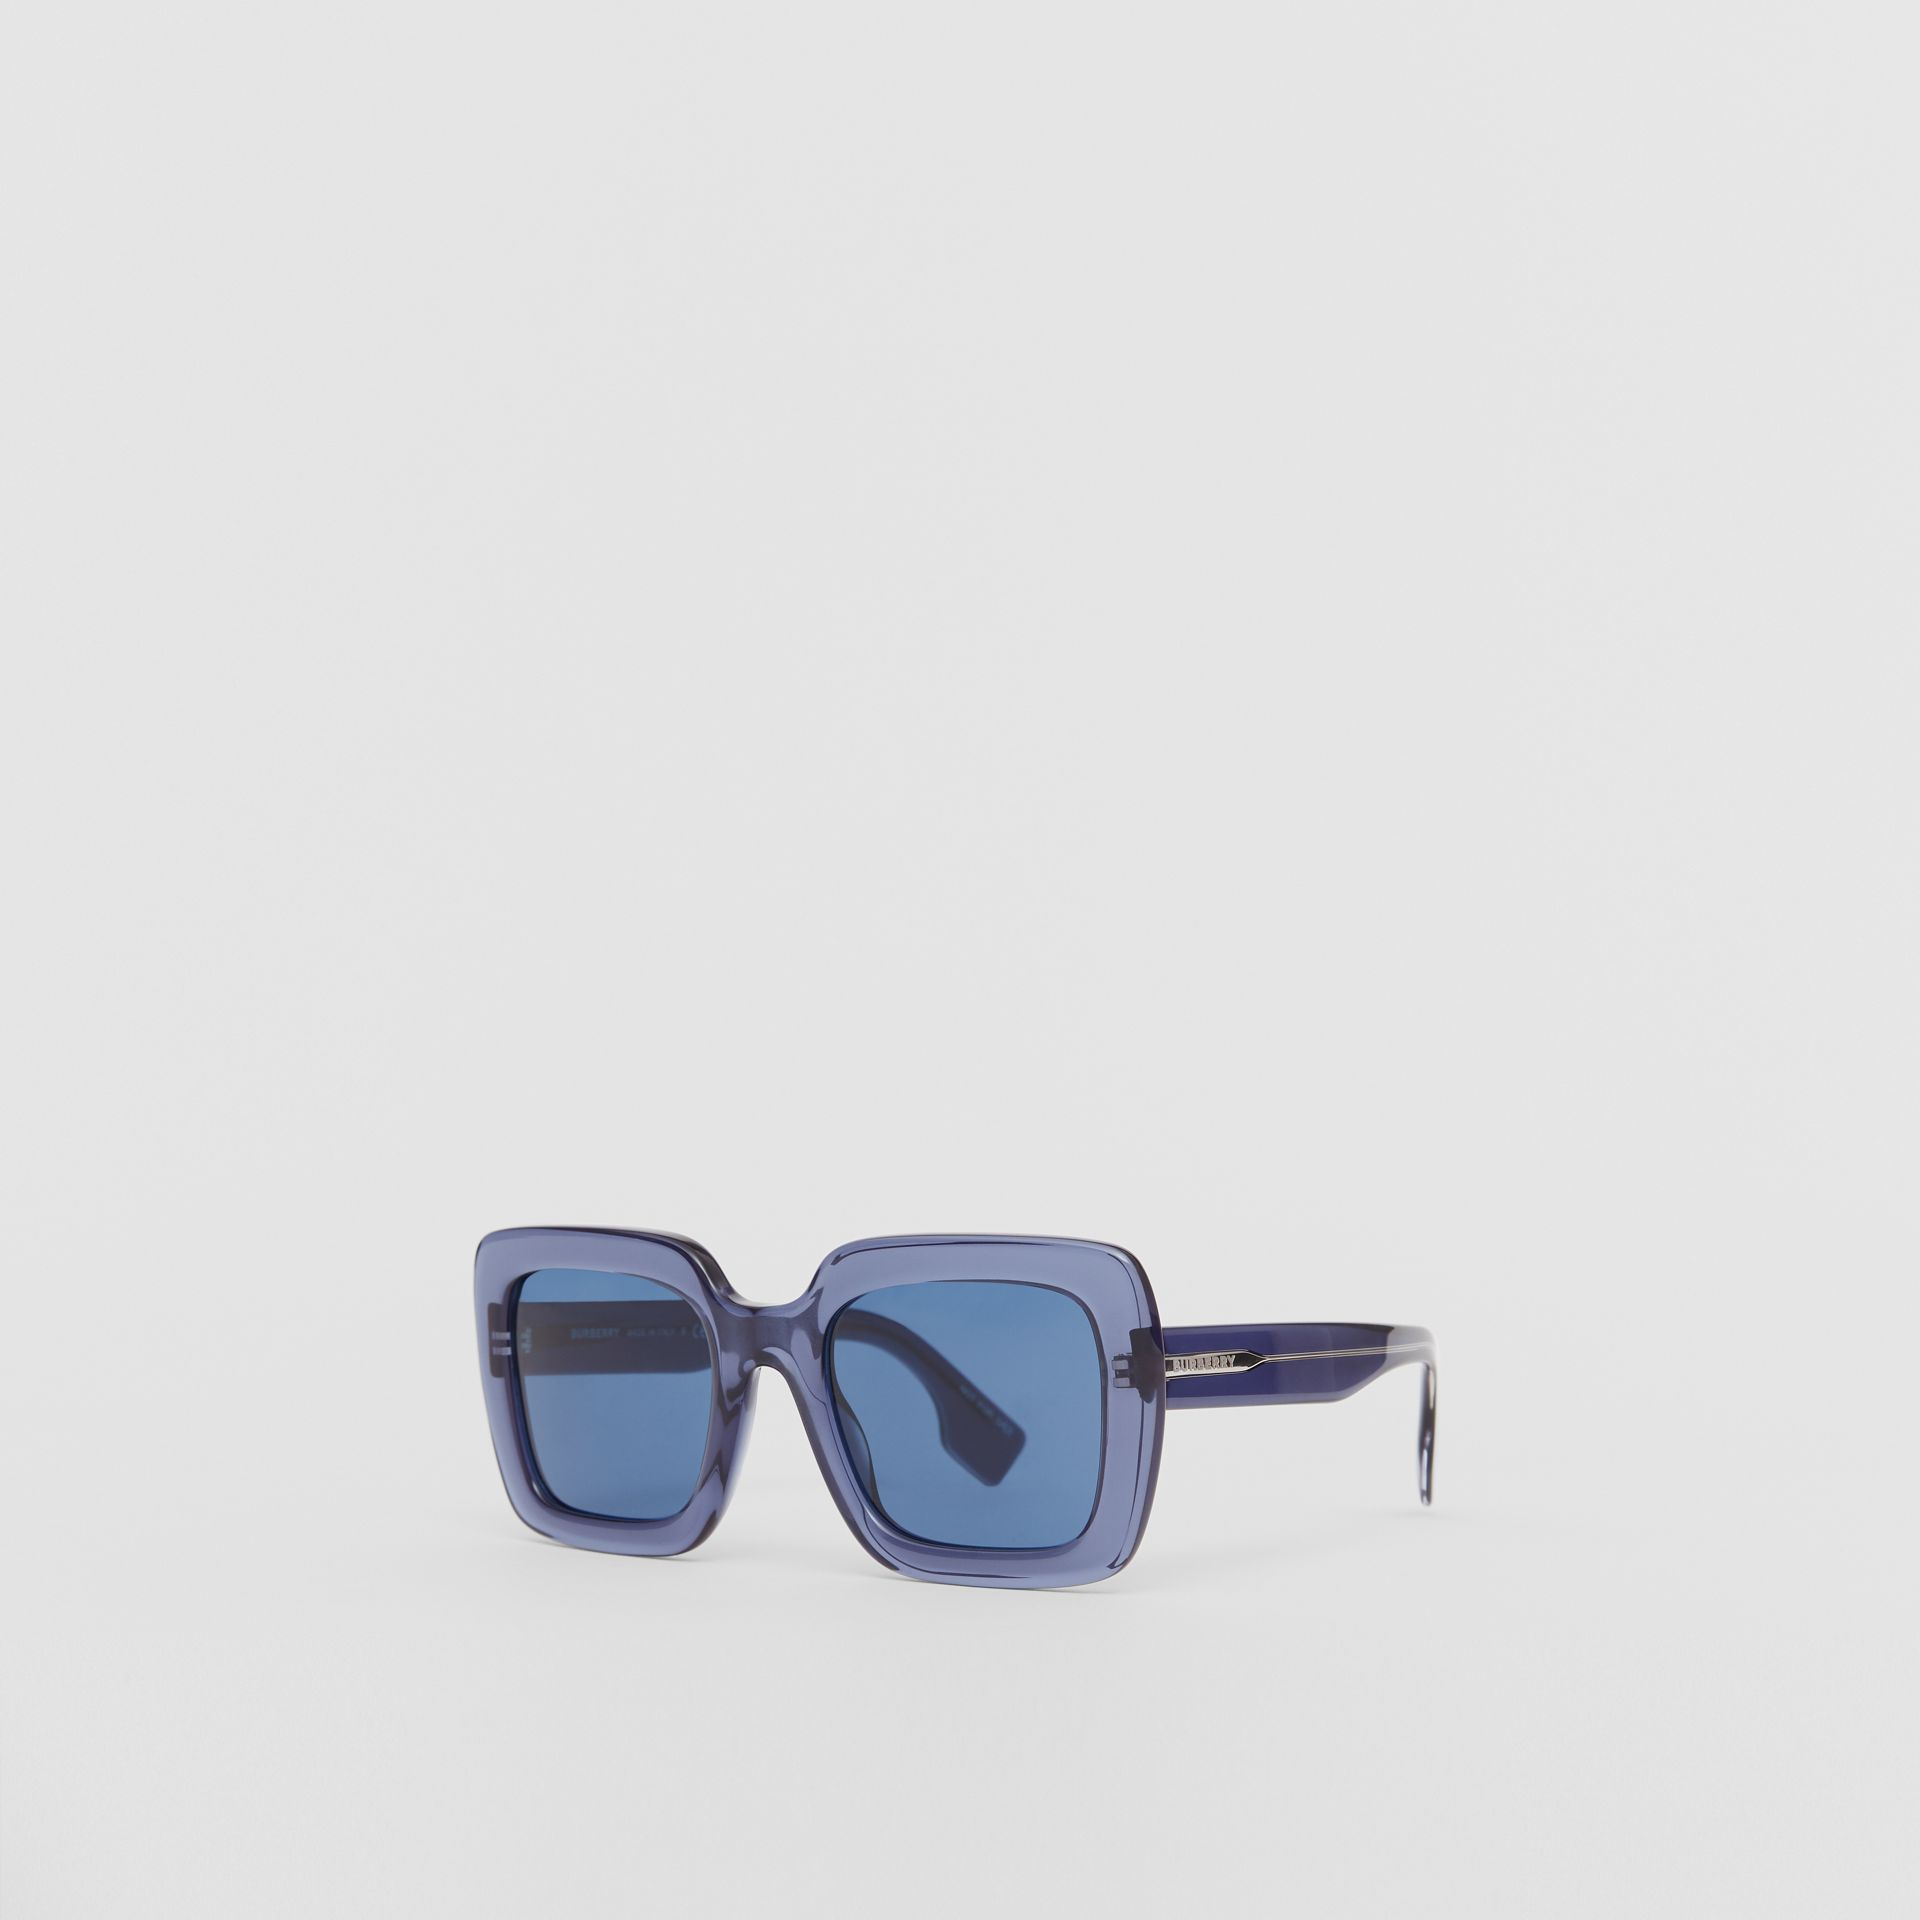 Oversized Square Frame Sunglasses in Blue - Women | Burberry Canada - gallery image 4